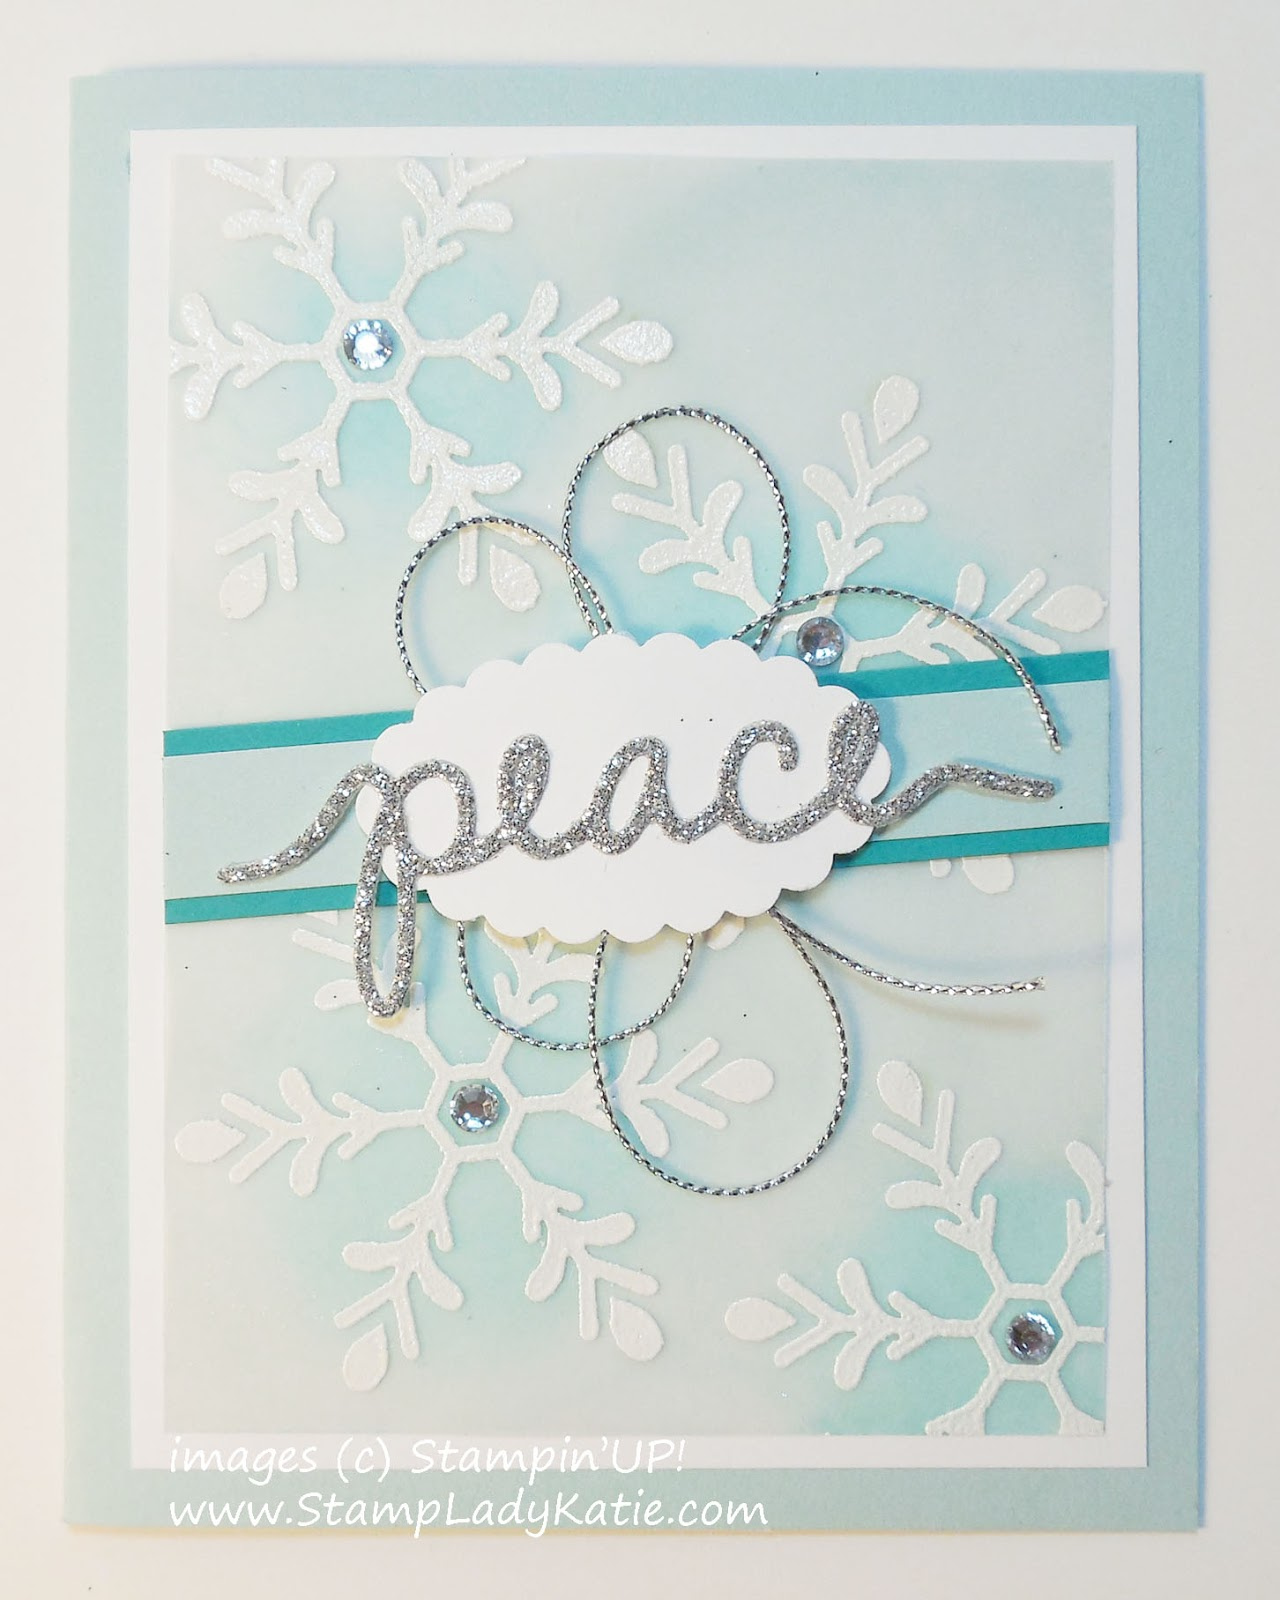 Stampladykatie Christmas Greeting Thinlet Over Embossed And